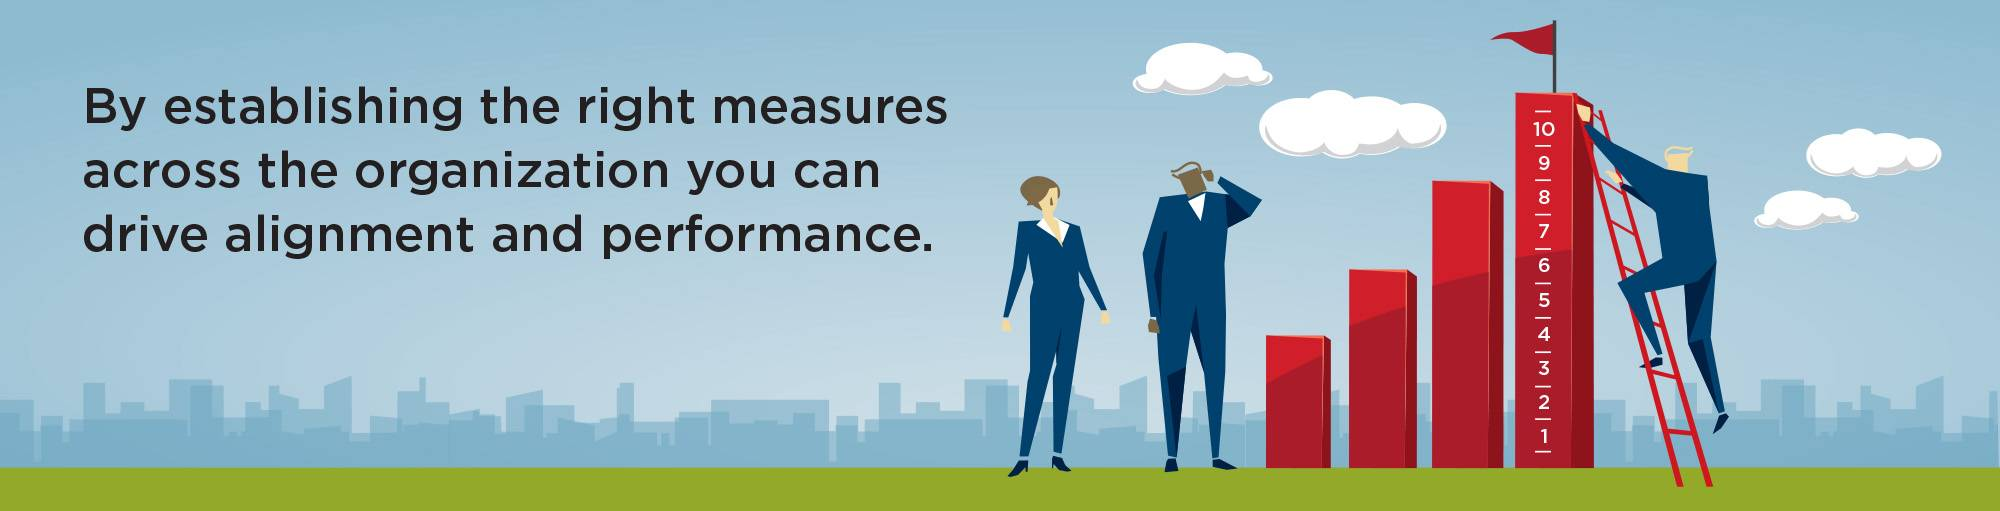 By establishing the right measures across the organization you can drive alignment and performance